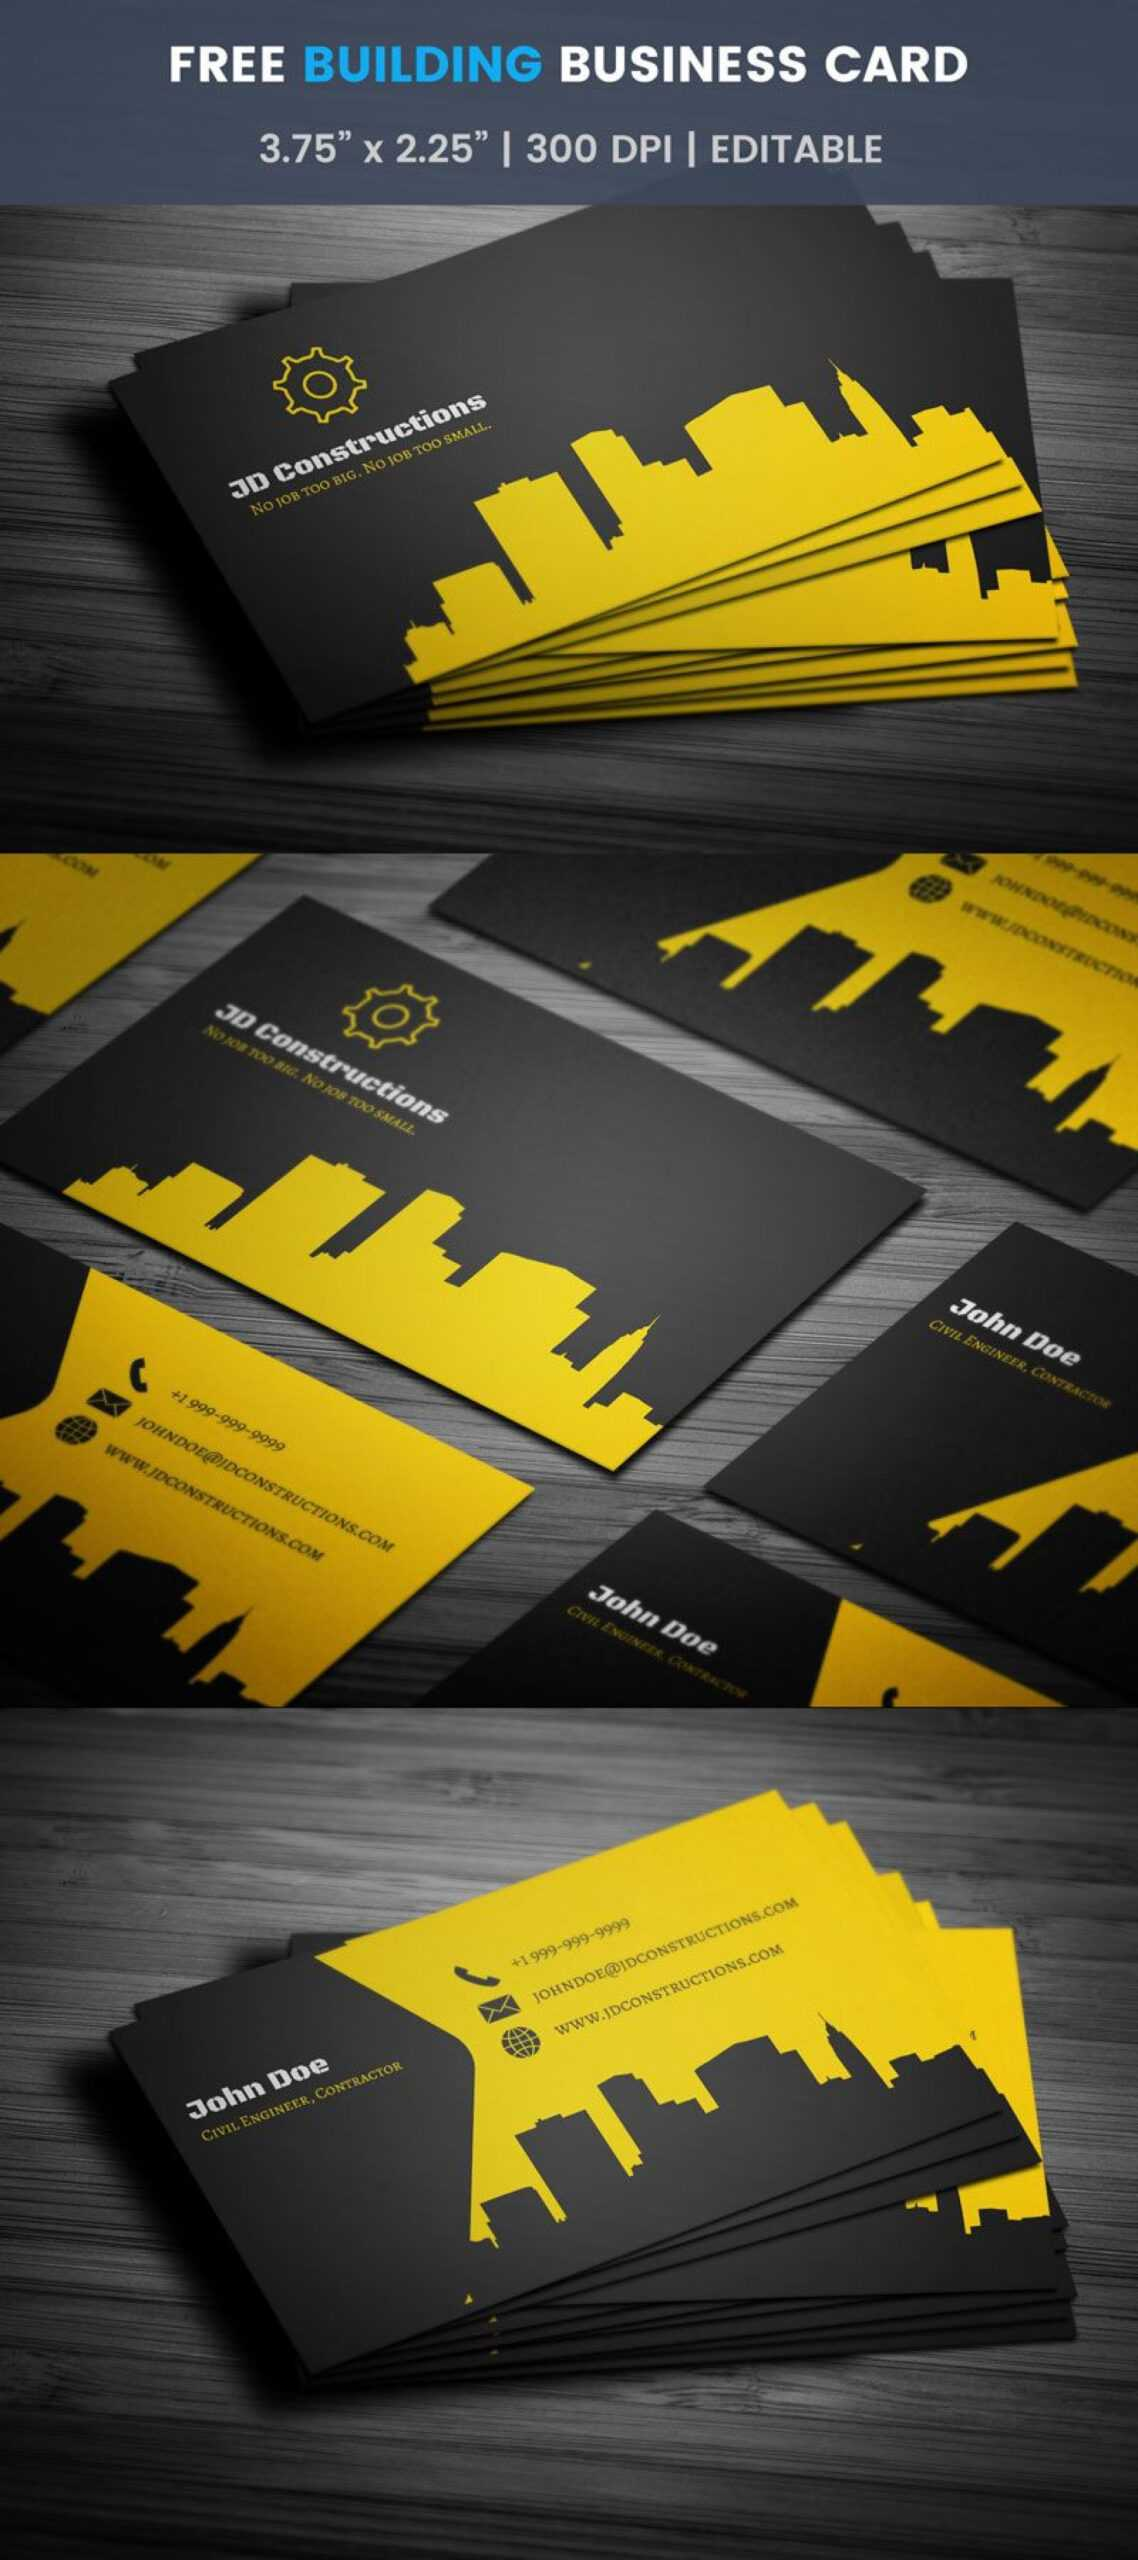 021 Trancprnt Business Card Template Ideas Construction With Construction Business Card Templates Download Free